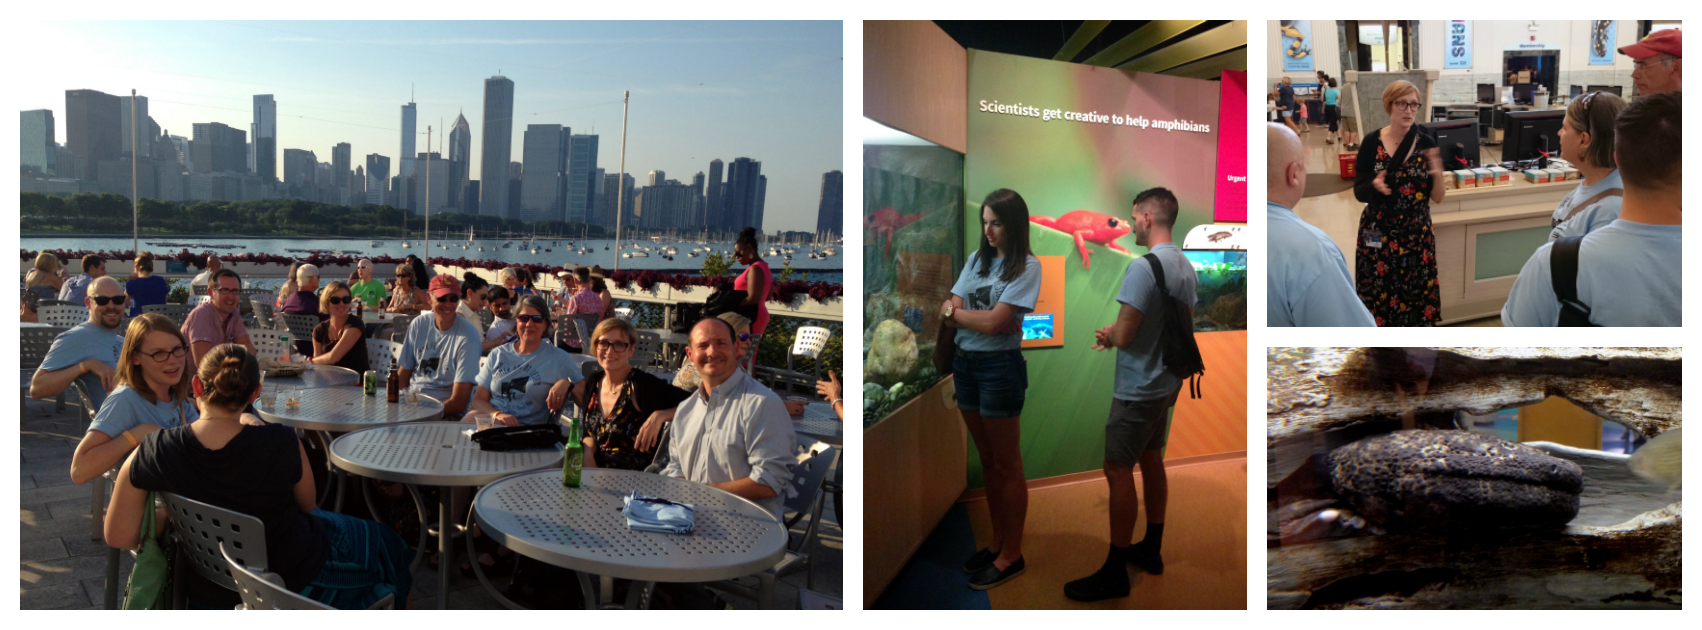 Shedd Aquarium design team visited by NeigerDesign